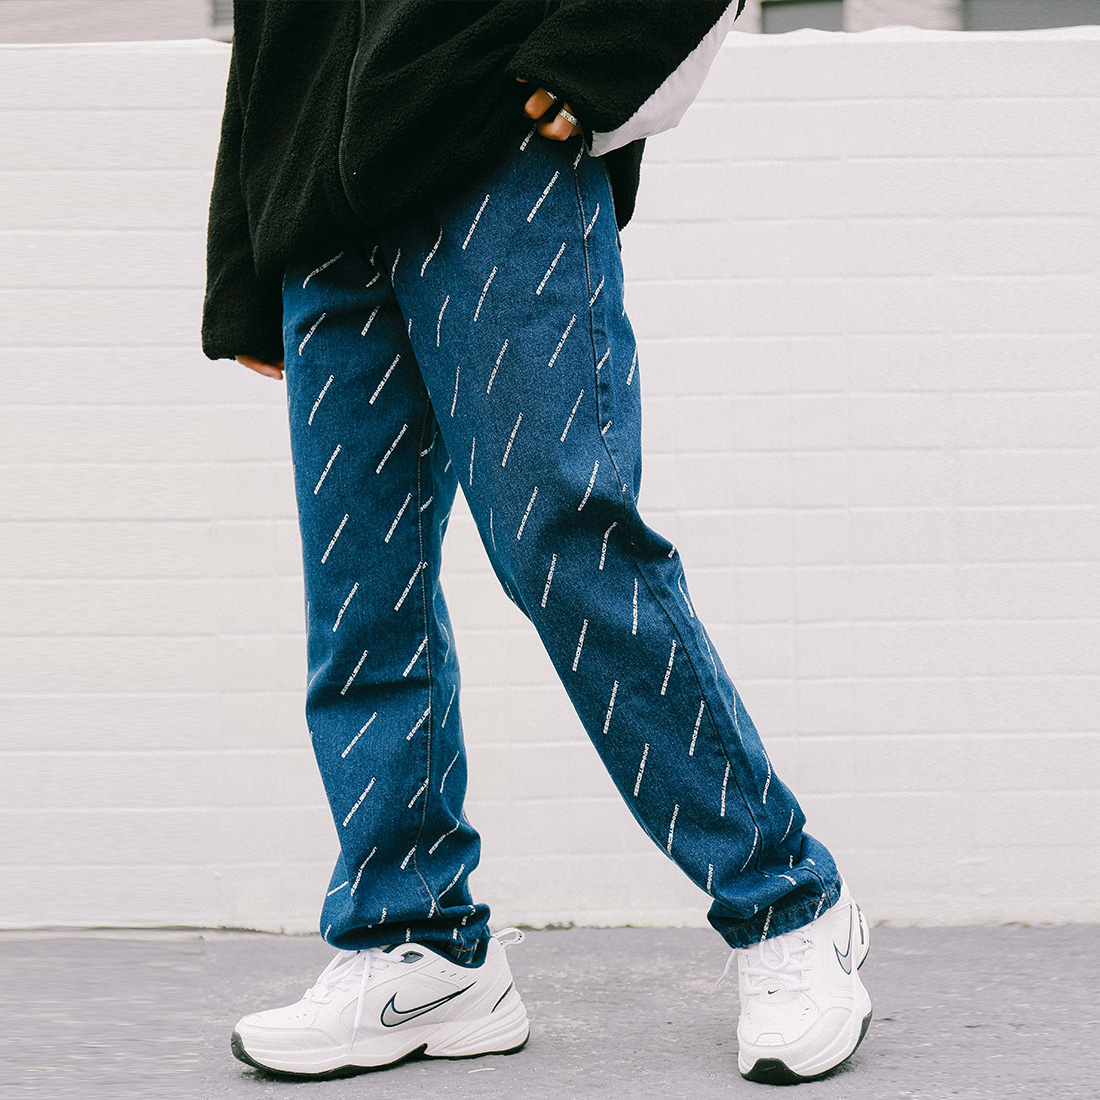 Aelfric Letter Printing Straight Trousers Loose Fashion Casual Jeans Hip Hop High Street Couple Denim Pants 2019 Spring Summer